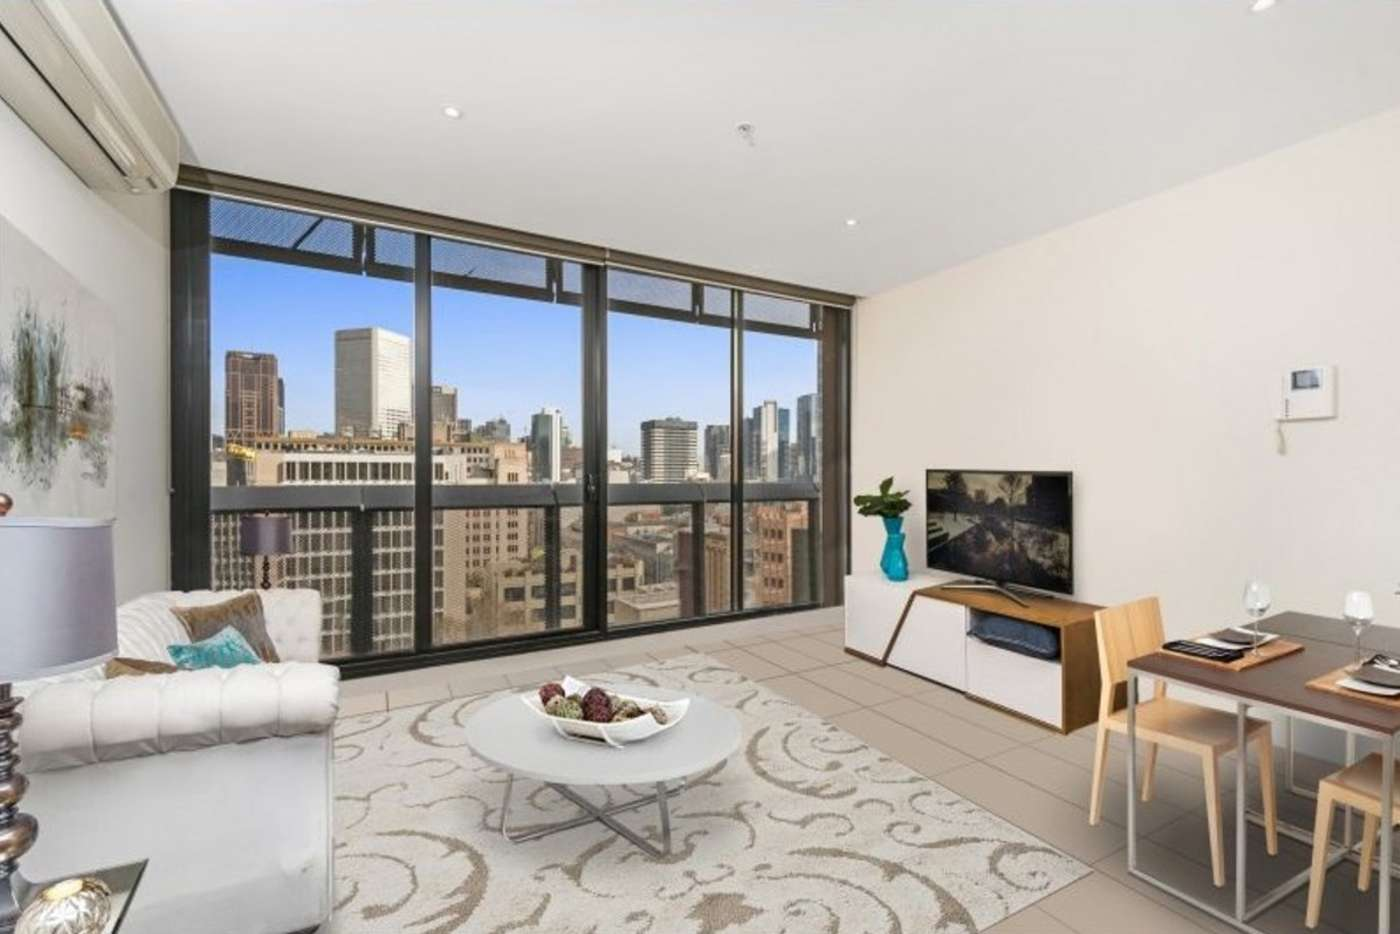 Main view of Homely apartment listing, 507/20-26 Coromandel Place, Melbourne VIC 3000